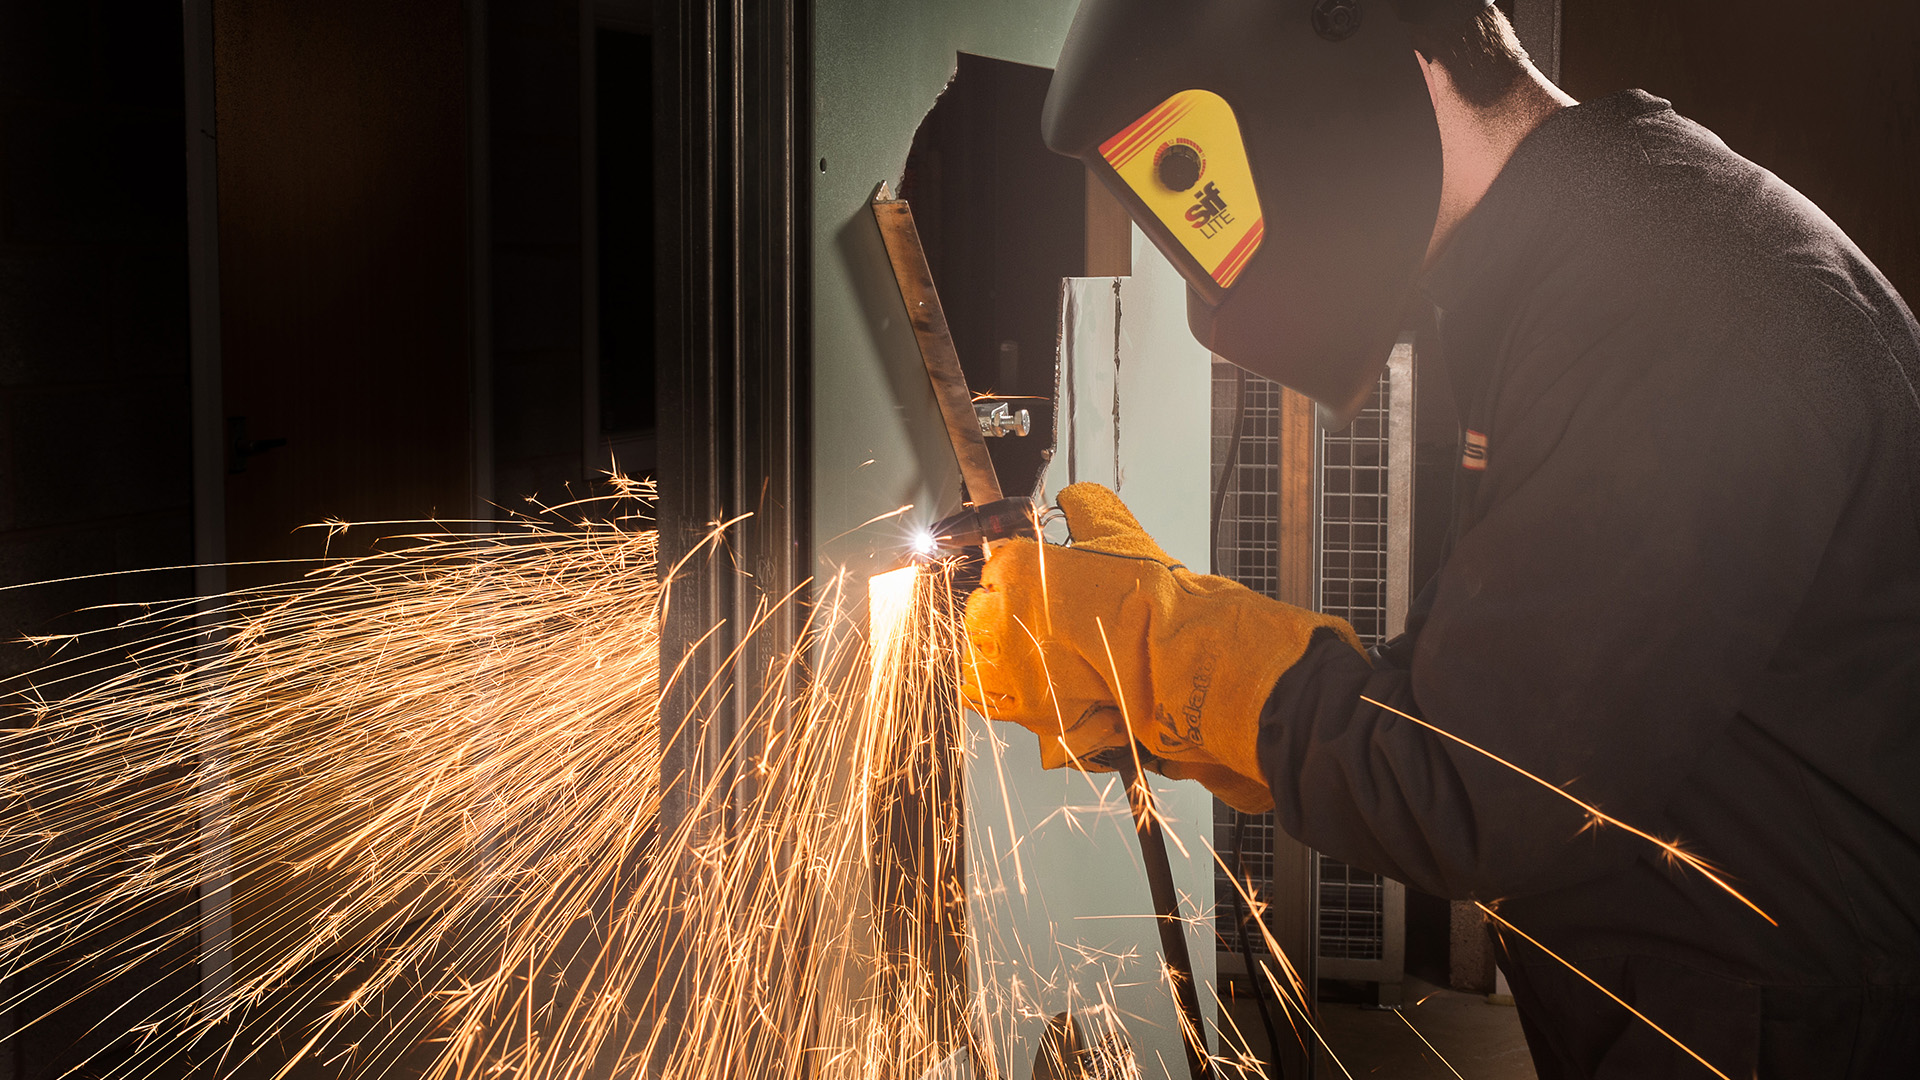 MMC Engineering, Milnthorpe, Cumbria; workshop showing apprentice engineer cutting metal components with oxy acetylene torch! Commercial shoot.